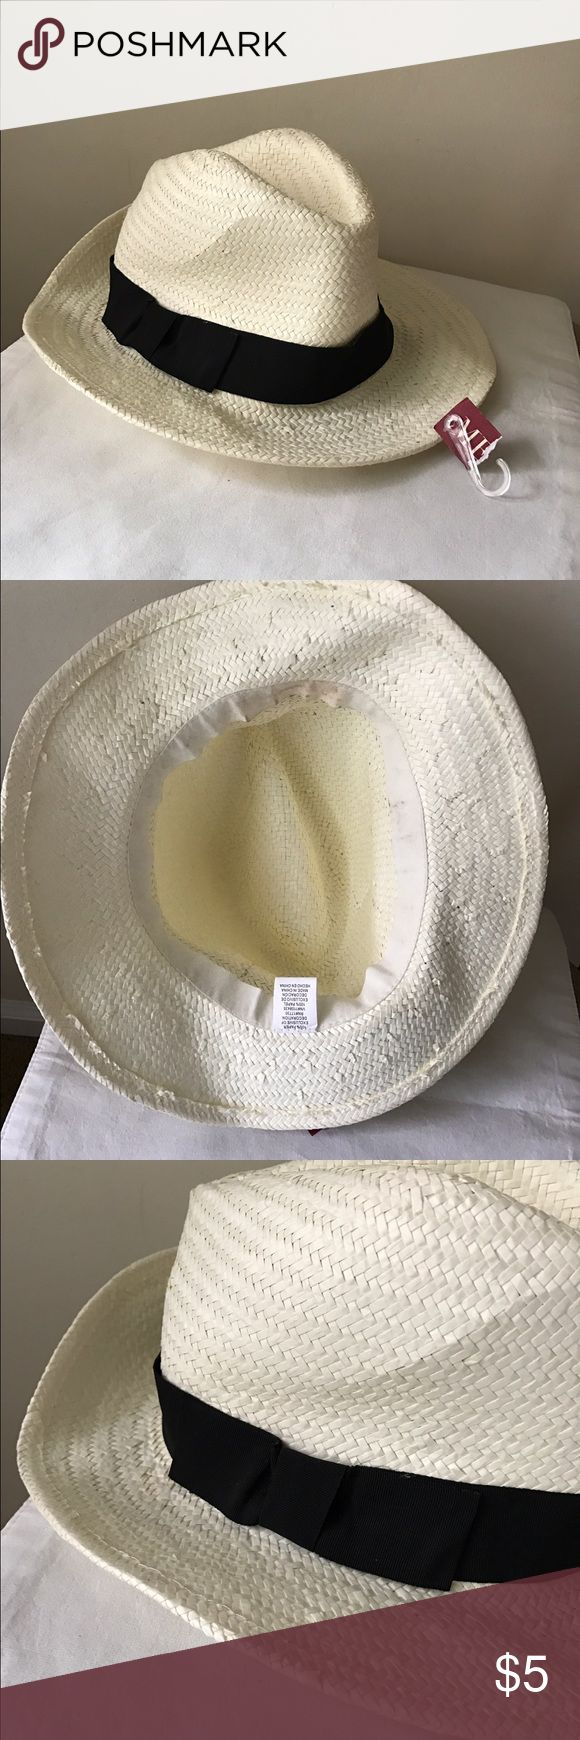 Merona fedora beach hat Fedora style beach hat - paper - one size - new with tags! Merona Accessories Hats